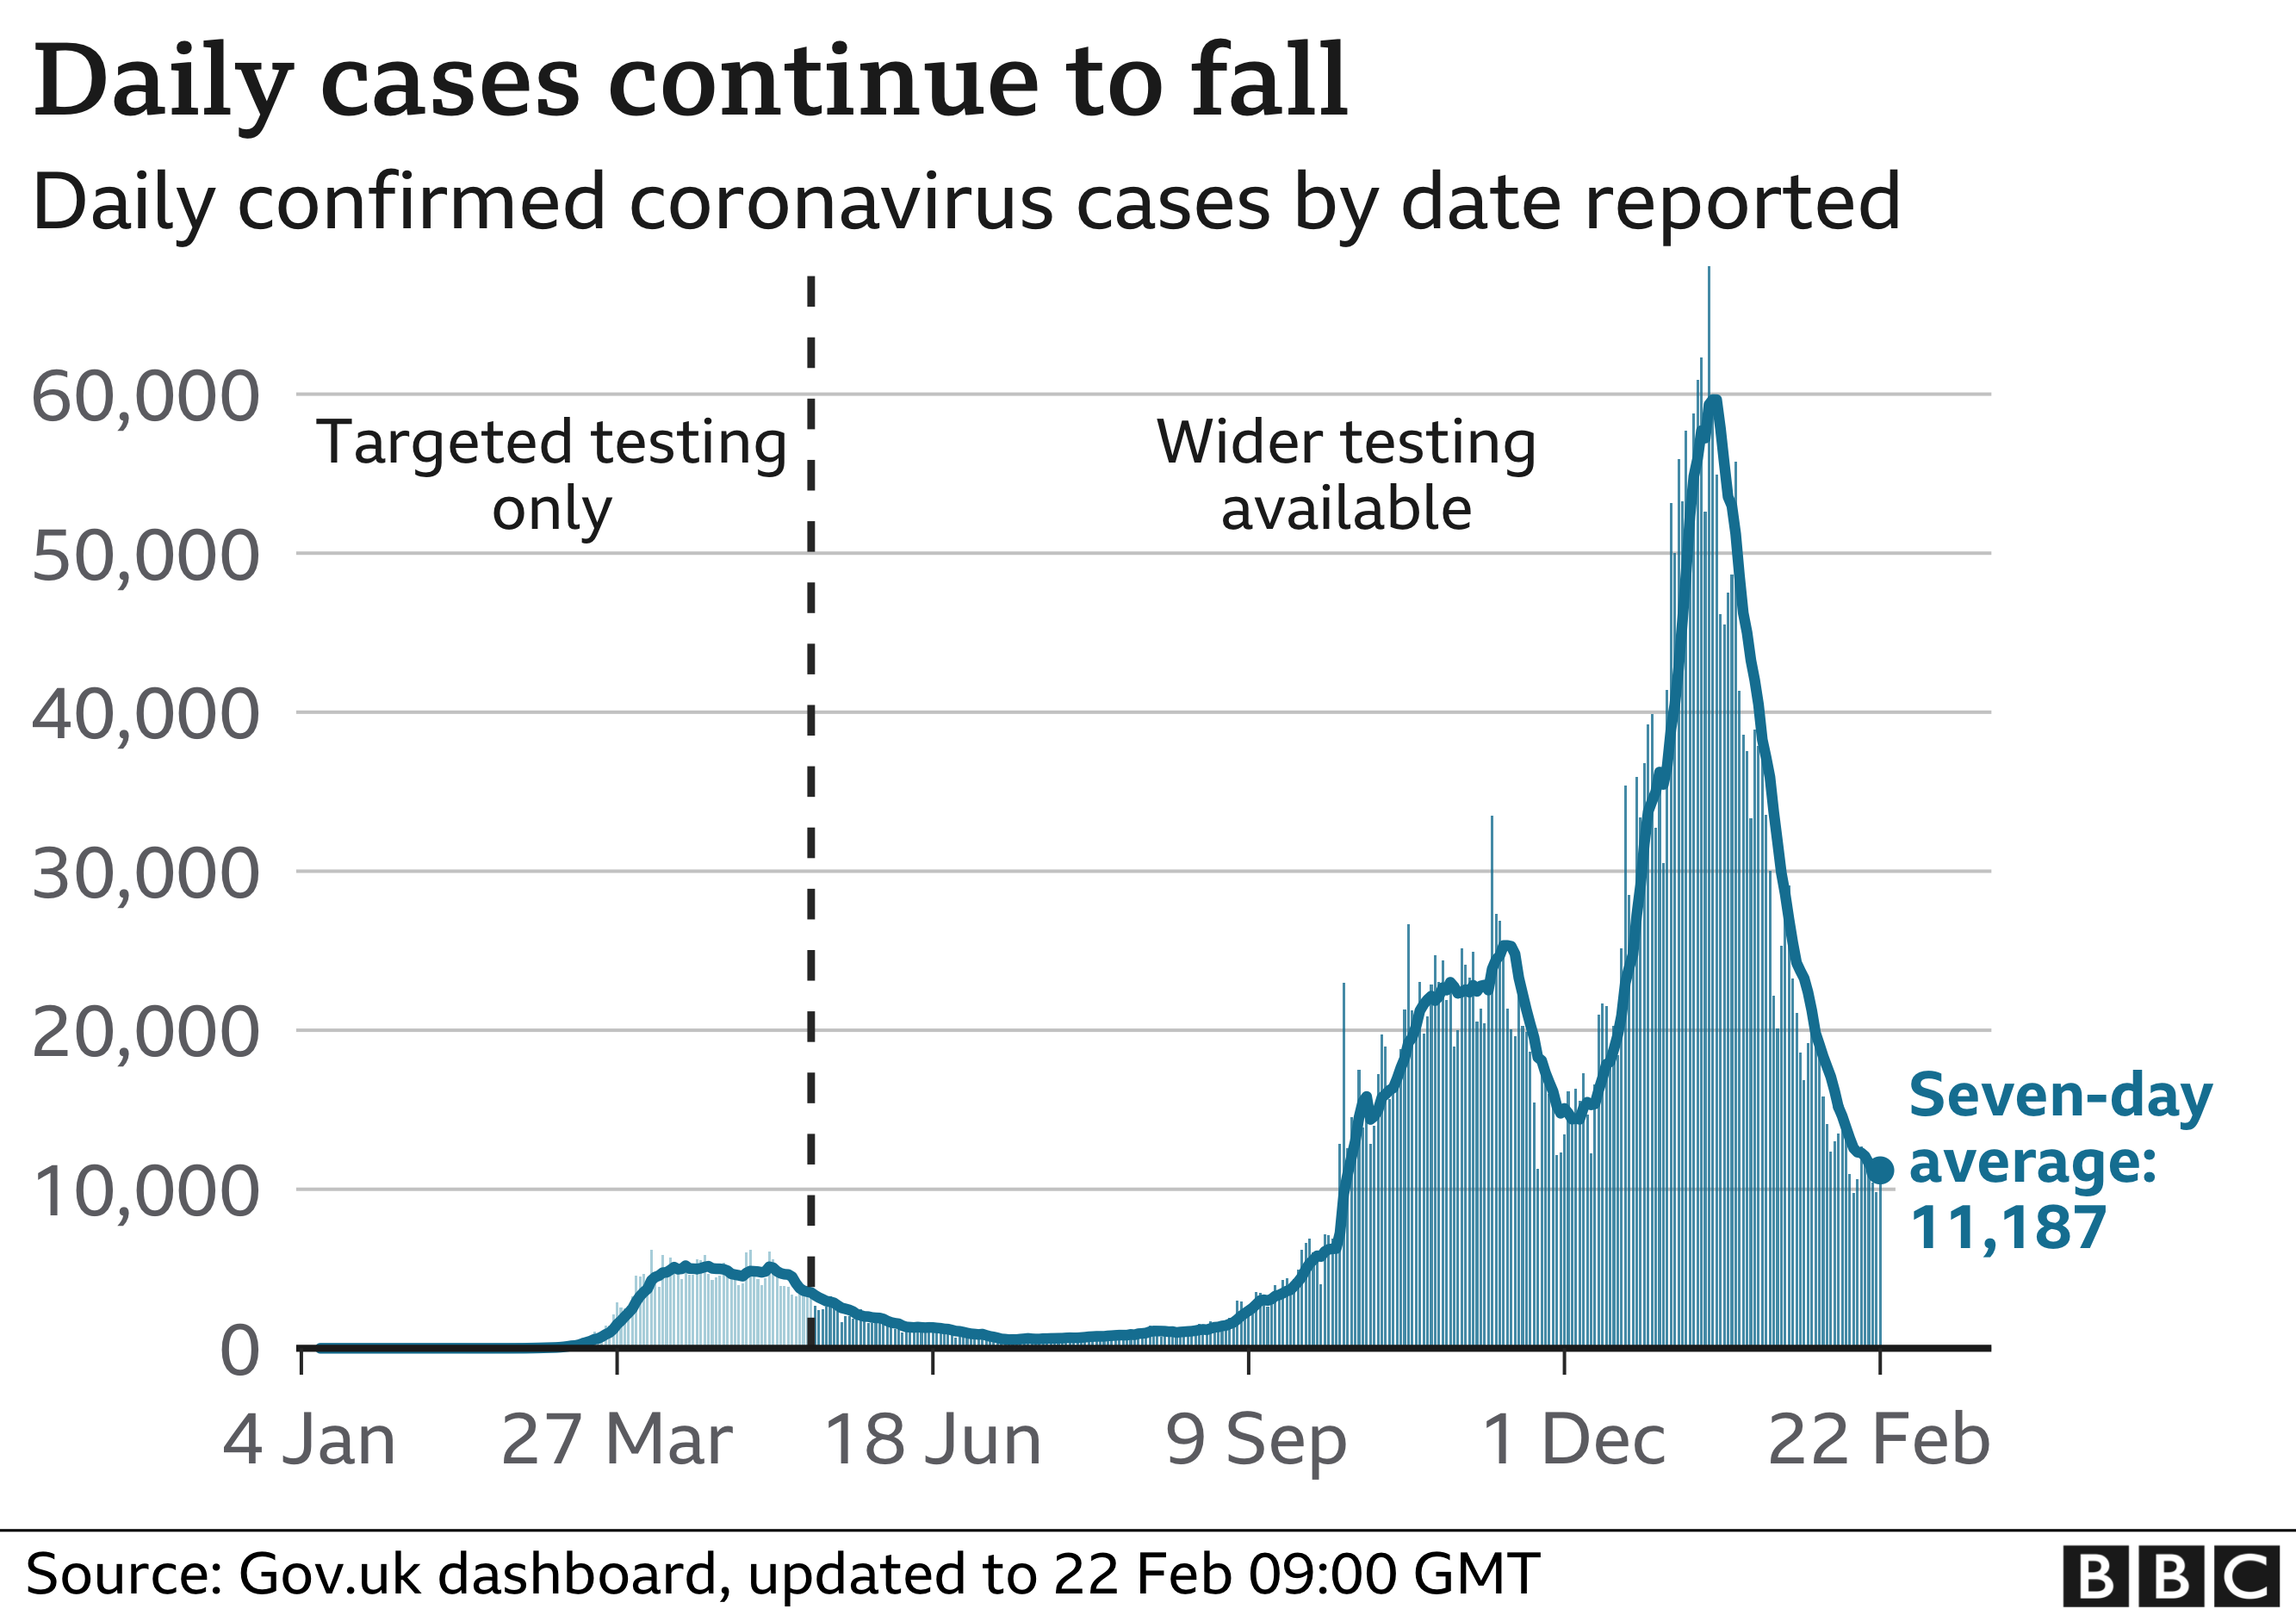 Chart shows cases continuing to fall. Updated 22 Feb.